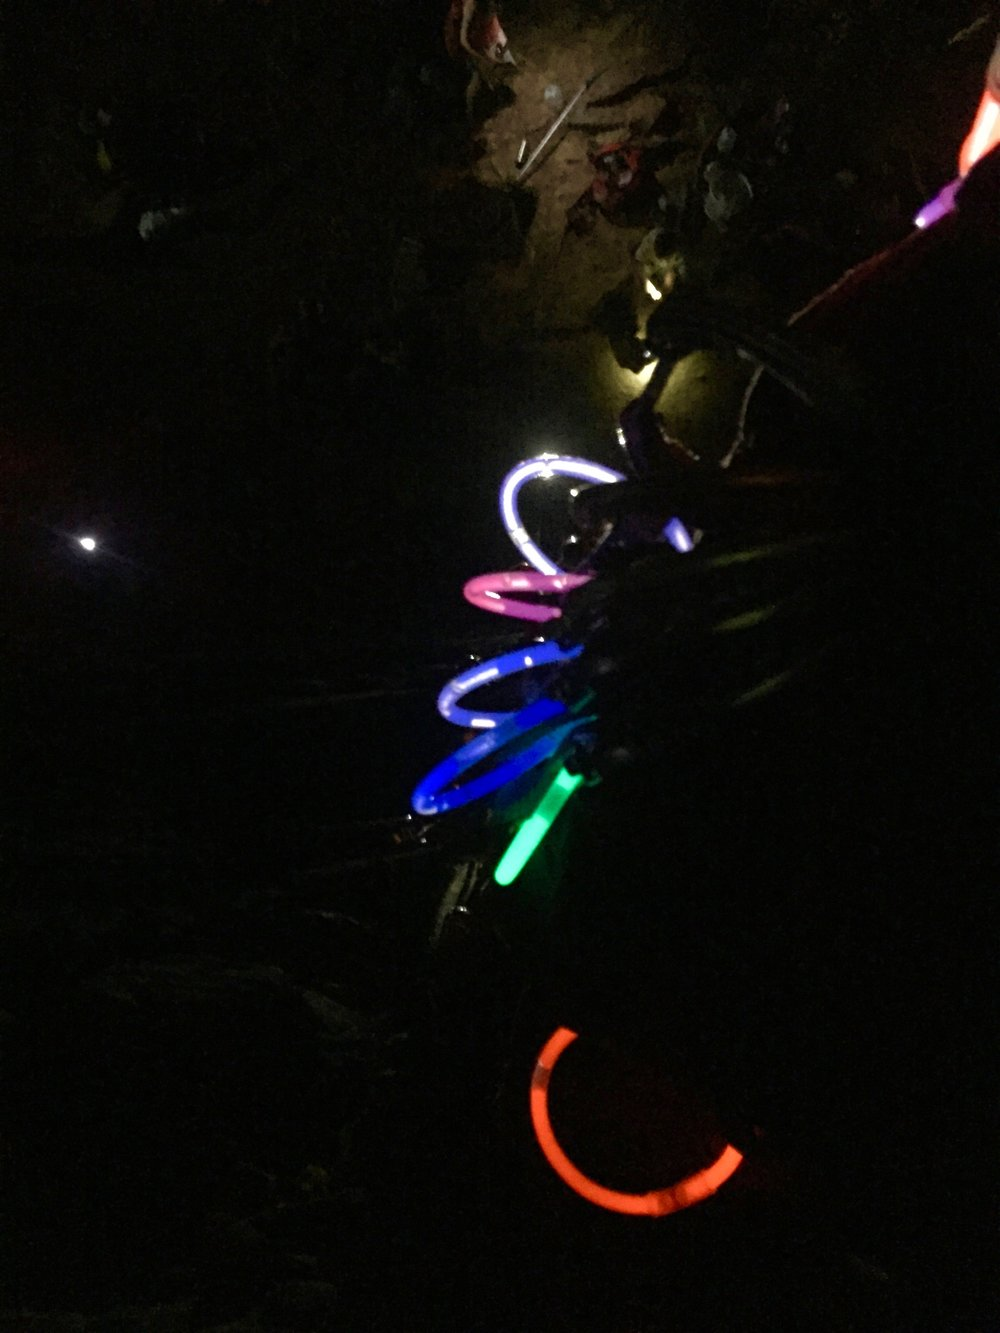 Glow sticks on all draws are a requirement for night climbing